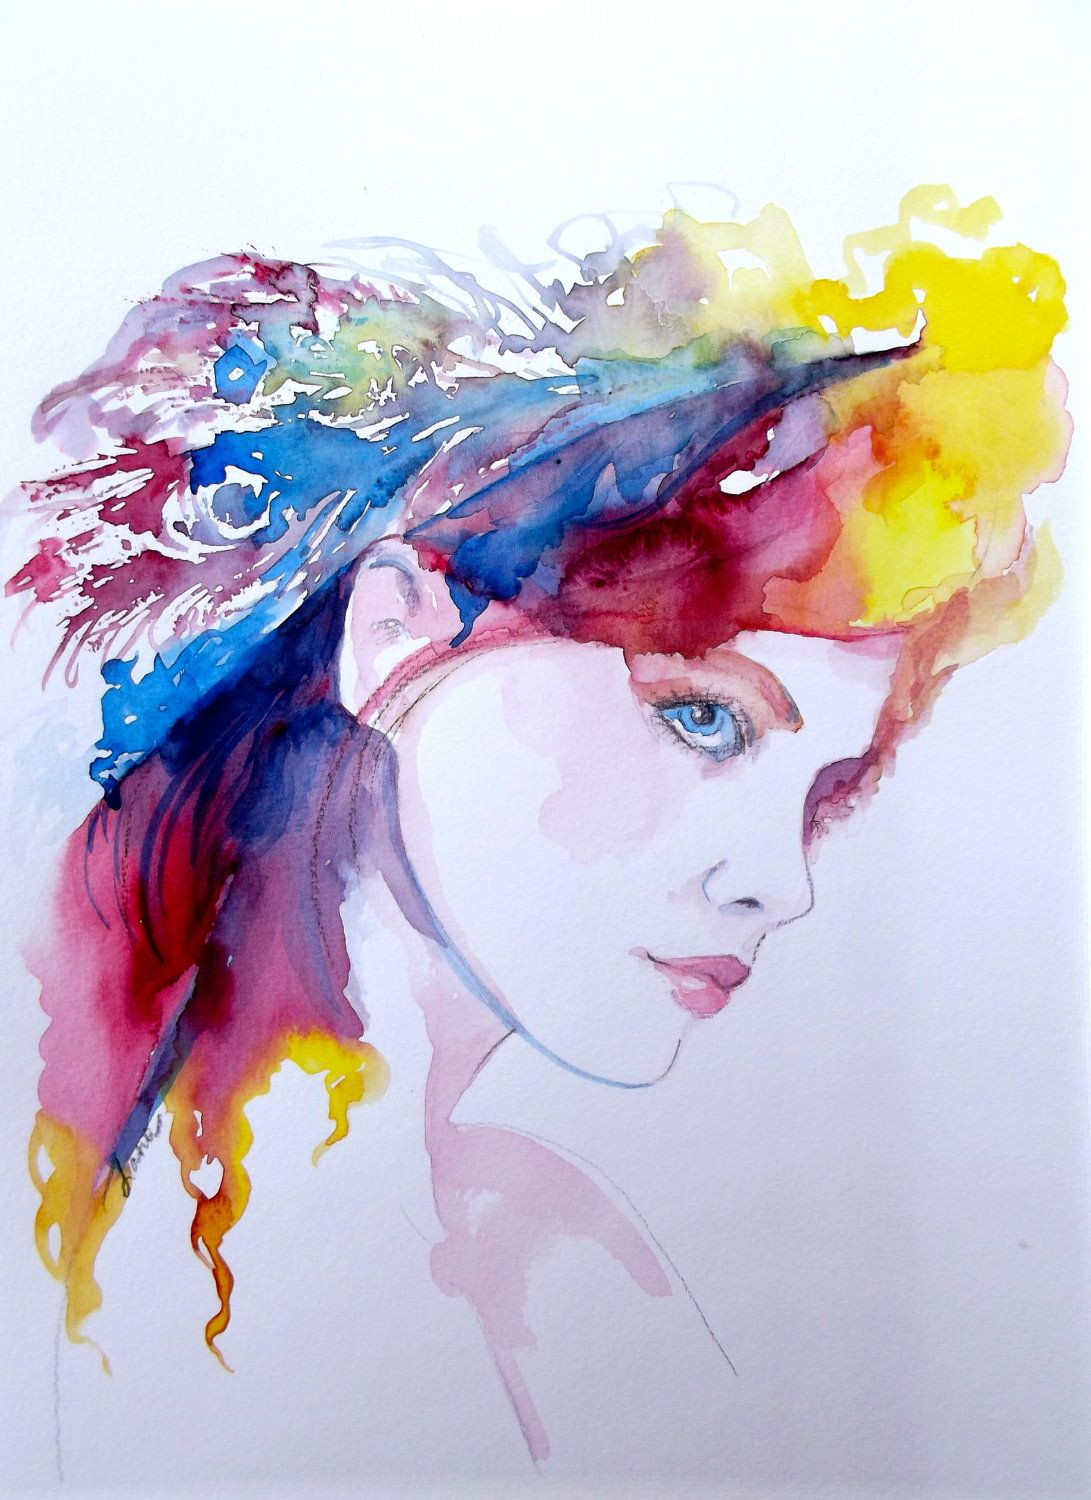 Watercolor artists websites - Fantasy Watercolor Painting Contemporary Fashion Illustration By Lana